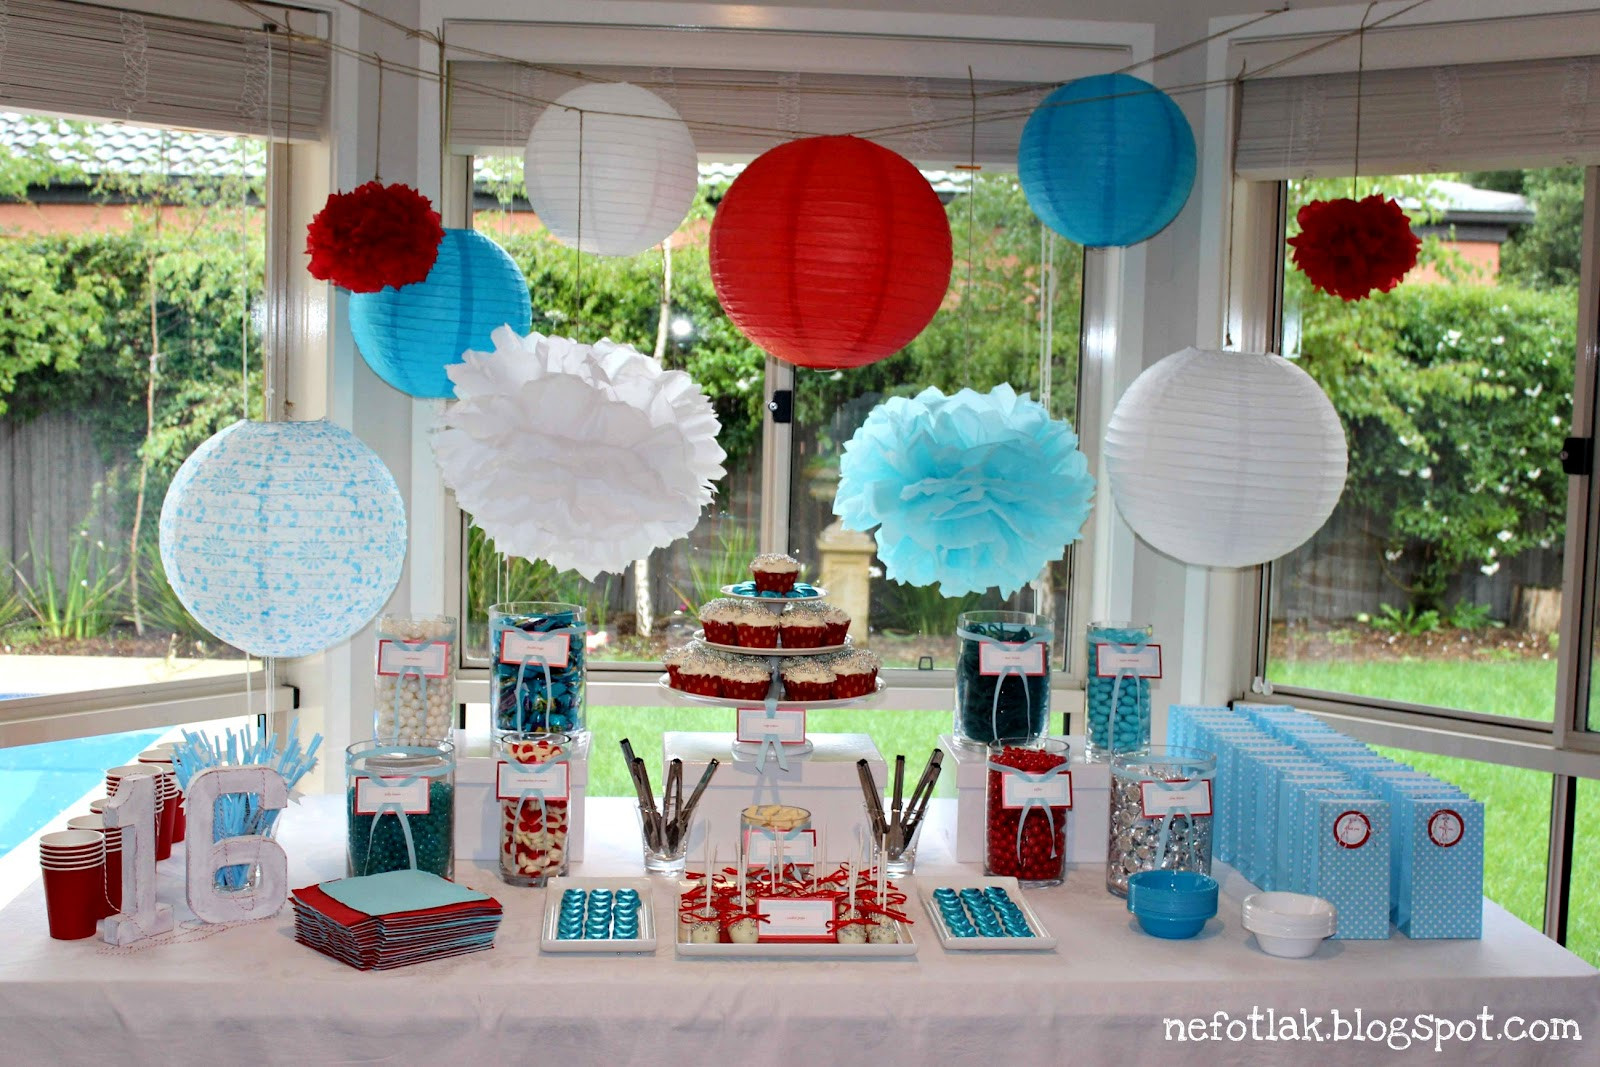 Best ideas about 16th Birthday Party . Save or Pin nefotlak 16th b day party candy bar dessert table Now.